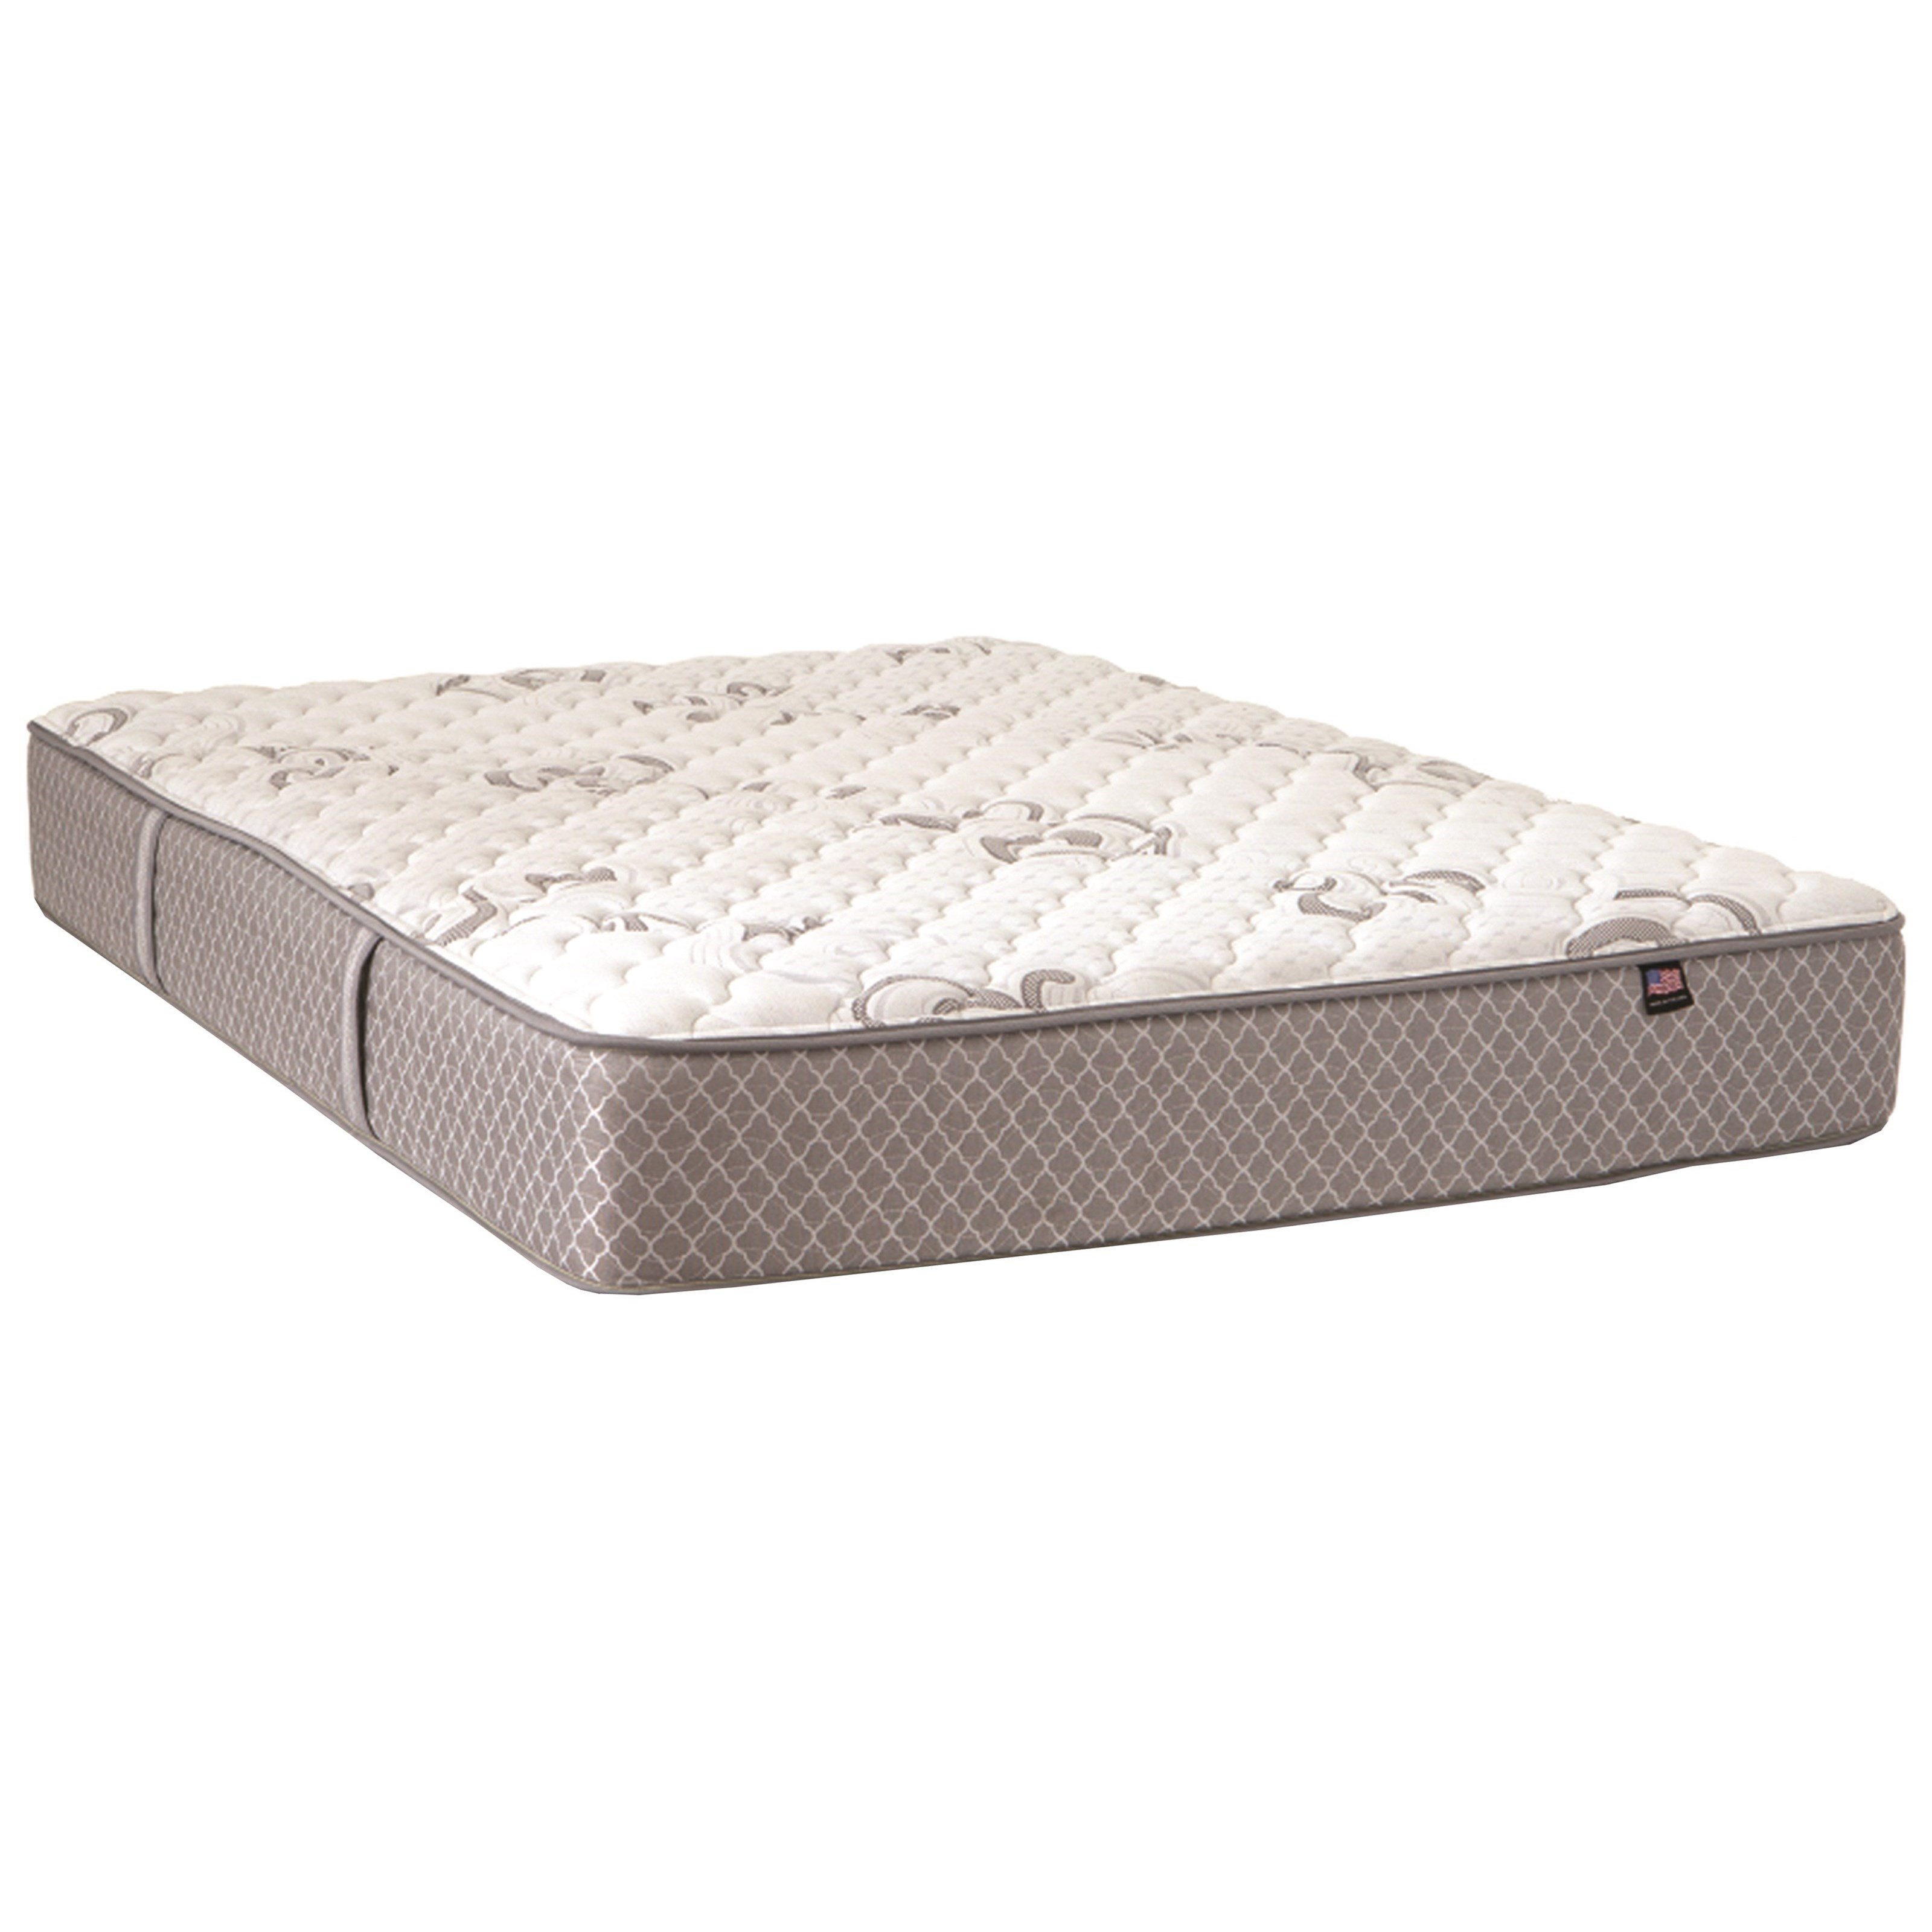 Broadway Firm King Firm Mattress by Therapedic at Darvin Furniture